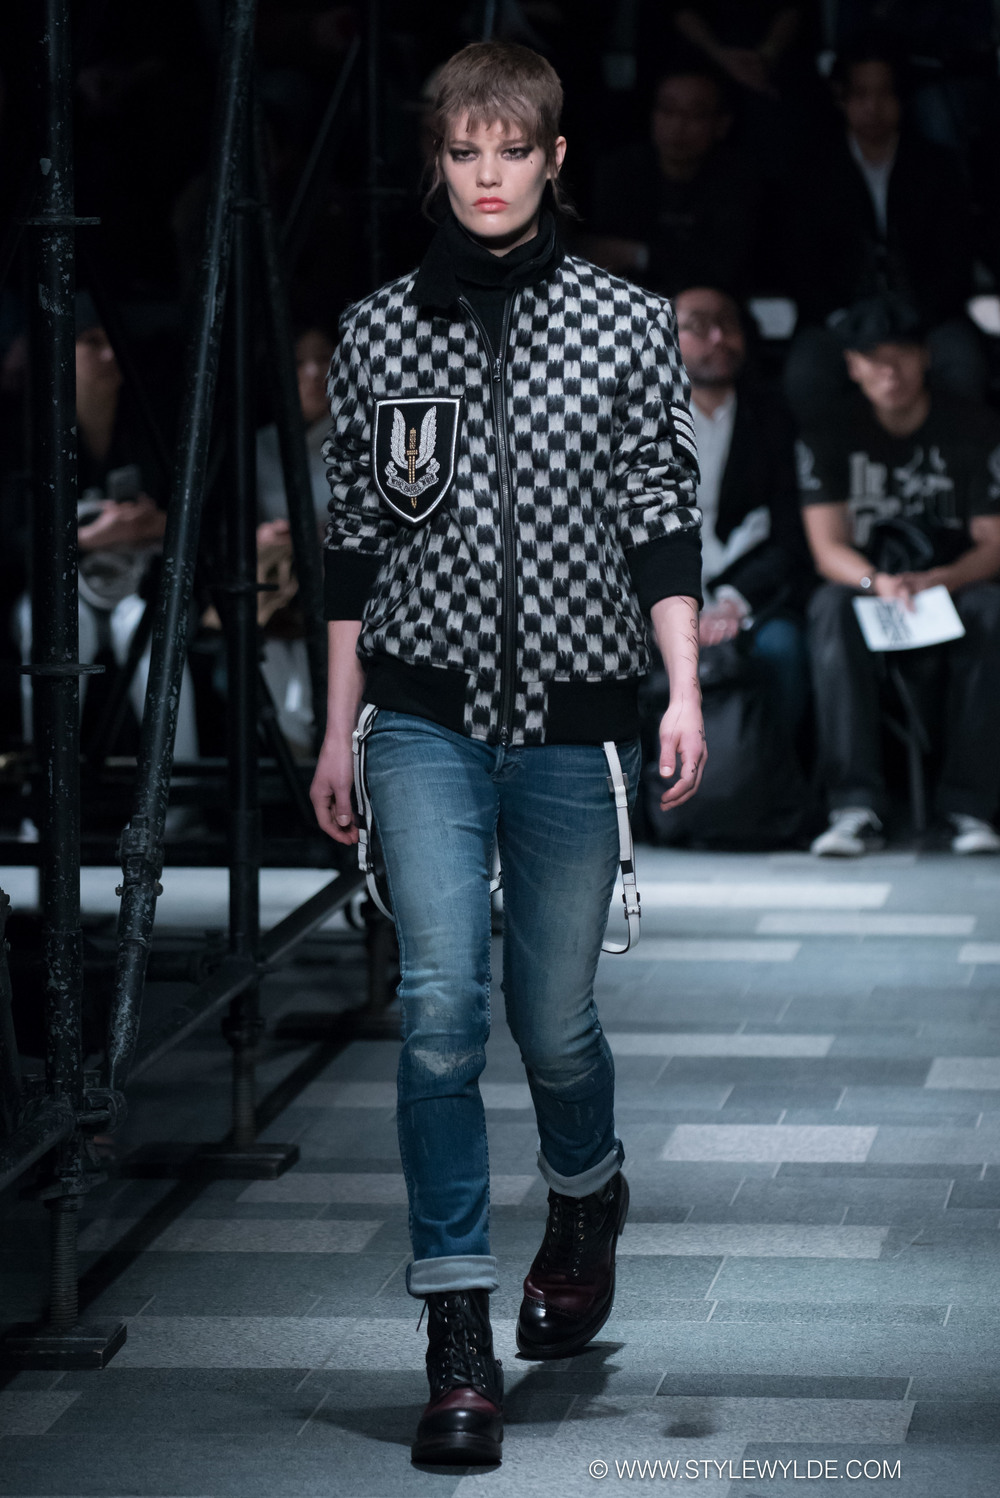 stylewylde_5351_pour_les_hommes_fw_2016-25.jpg